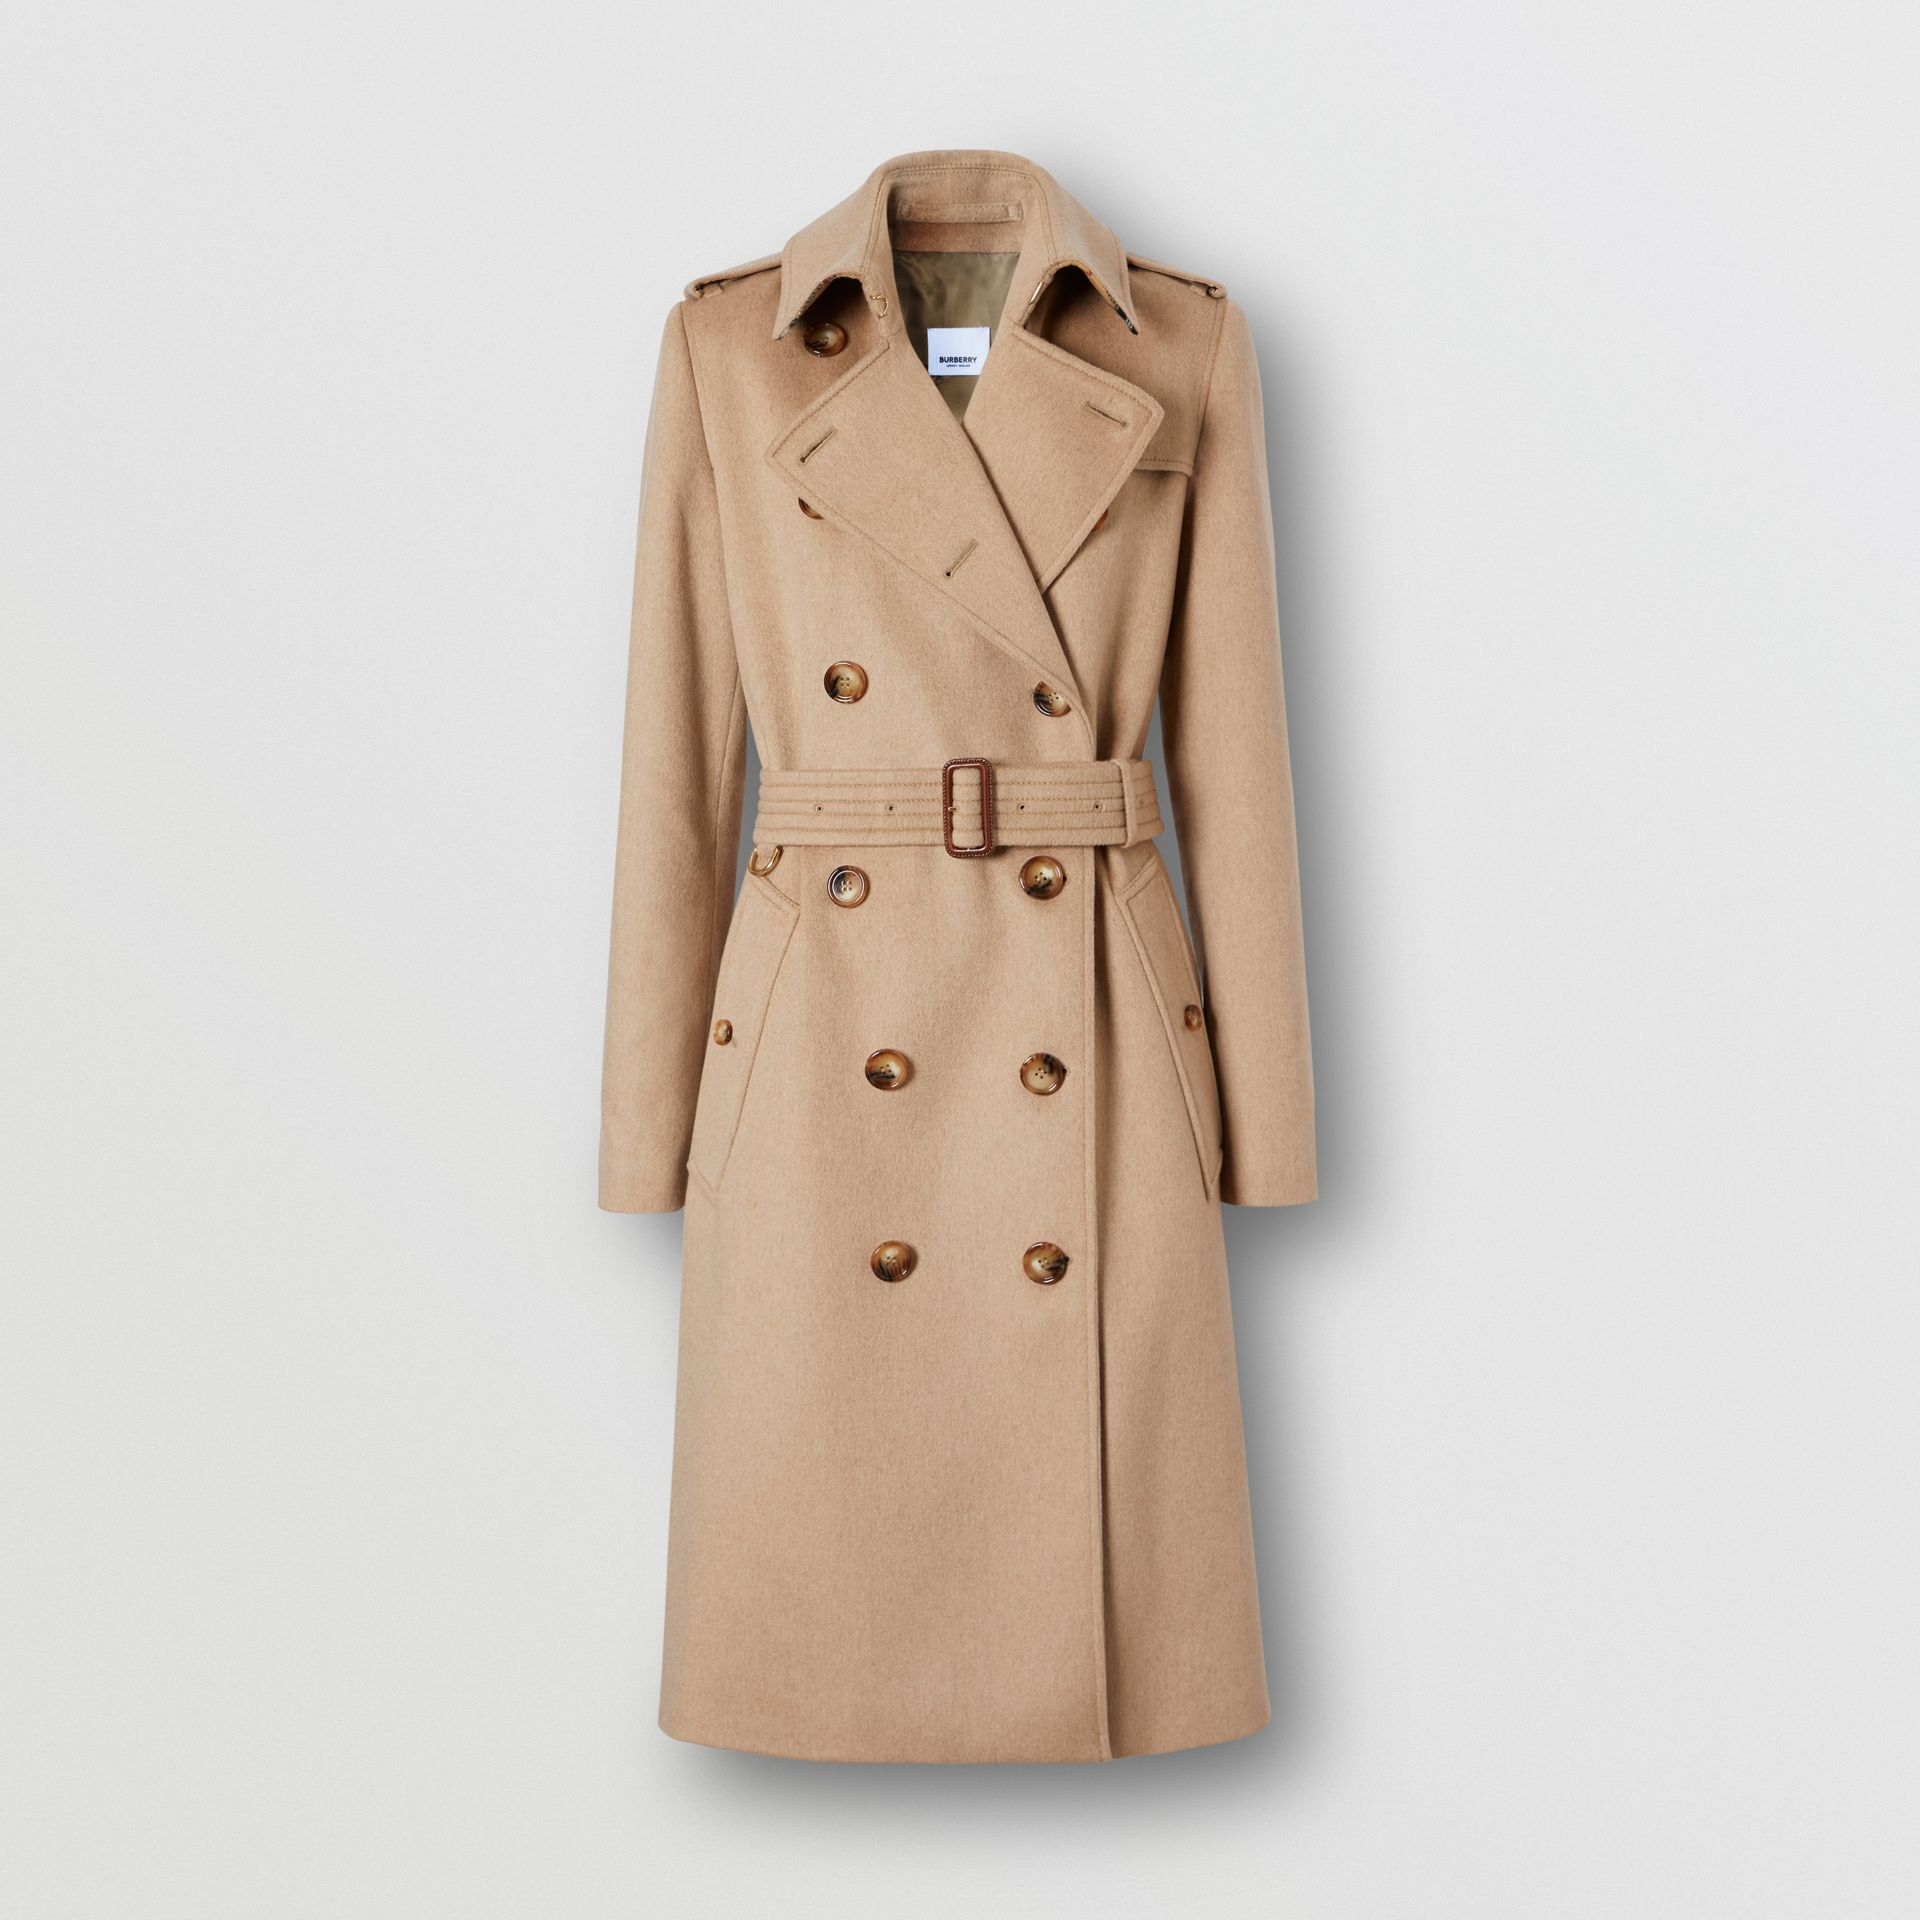 Cashmere Trench Coat in Camel - Women | Burberry Australia - gallery image 3